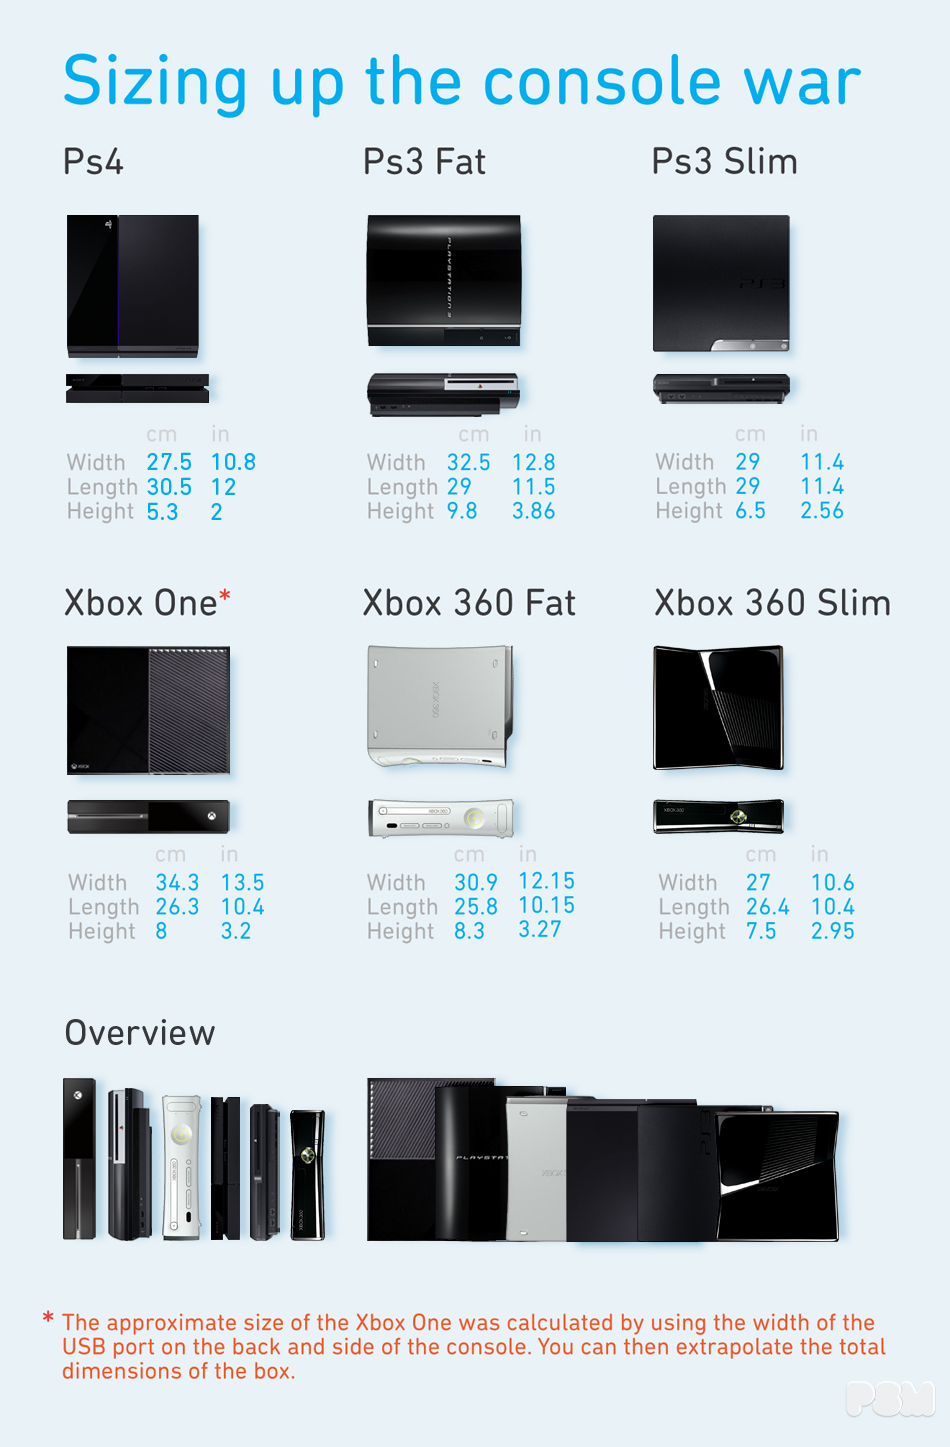 Sizing up the console war - PS4 & Xbox One dimensions revealed